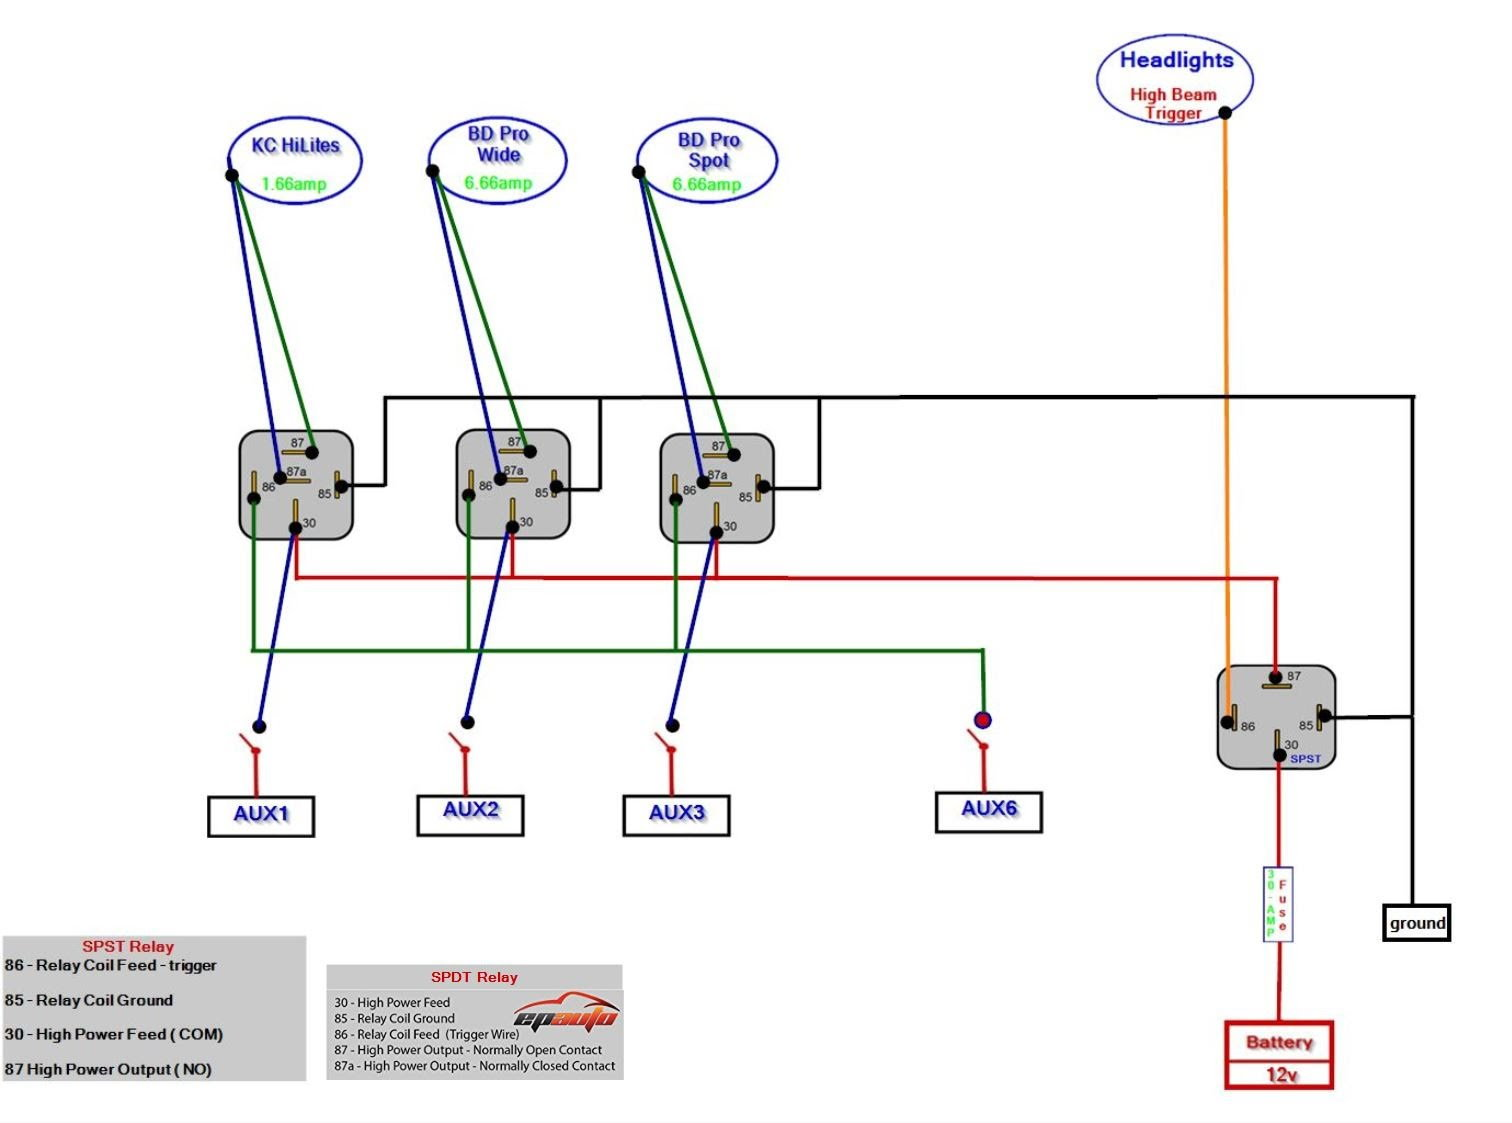 Need Help With Wiring Lights Spst And Spdt Relays Ford F150 Diagram In Parrallel Here Is The One Someone Play Connect Dots Hahaha